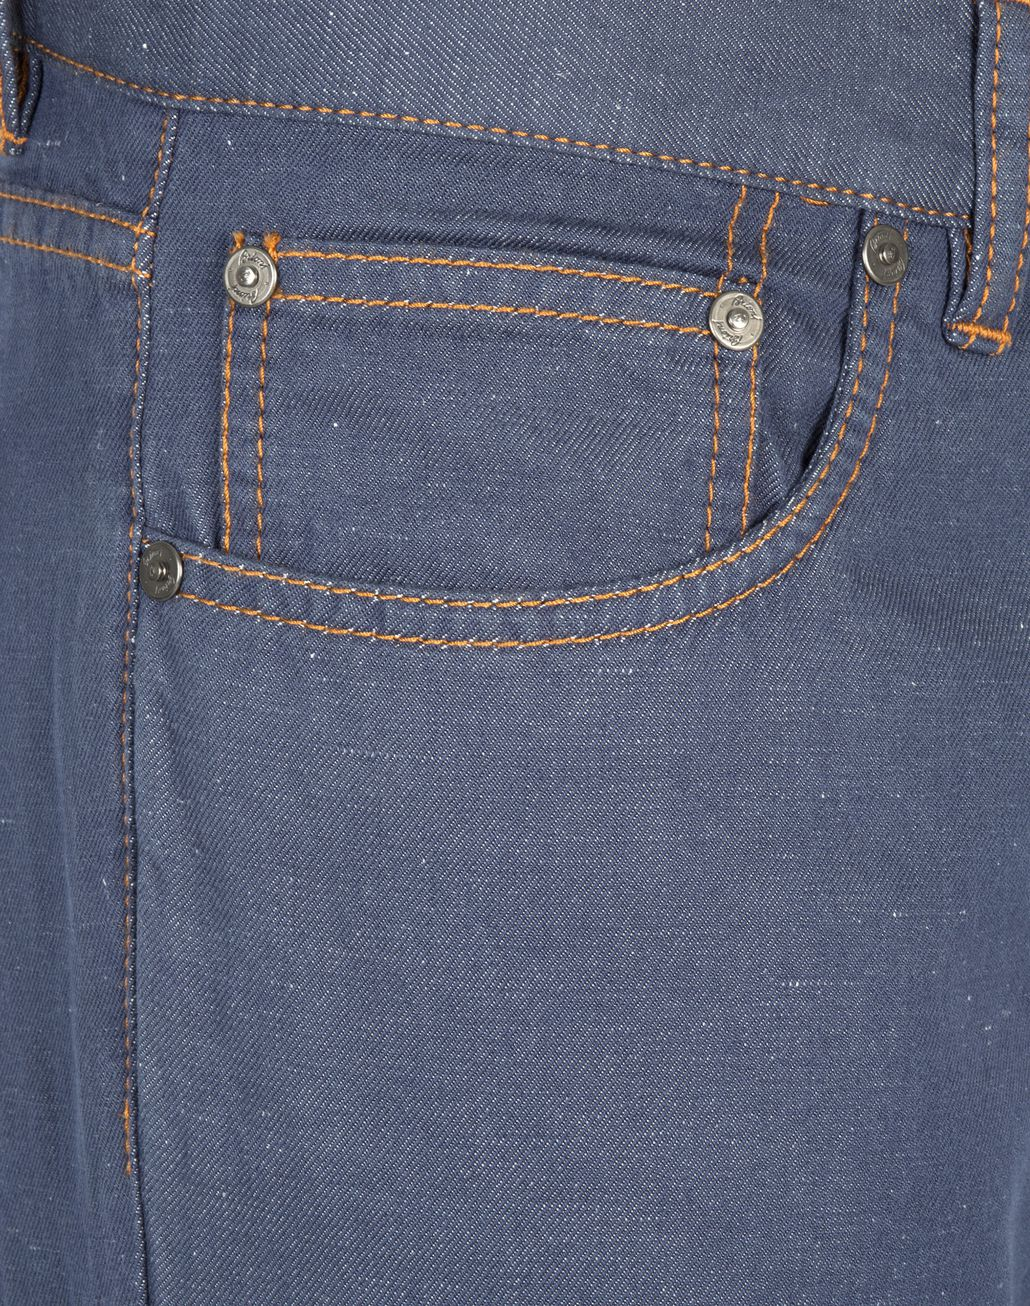 BRIONI Bluette Slim Fit Cotton and Linen Aneto Jeans  Denim Man e